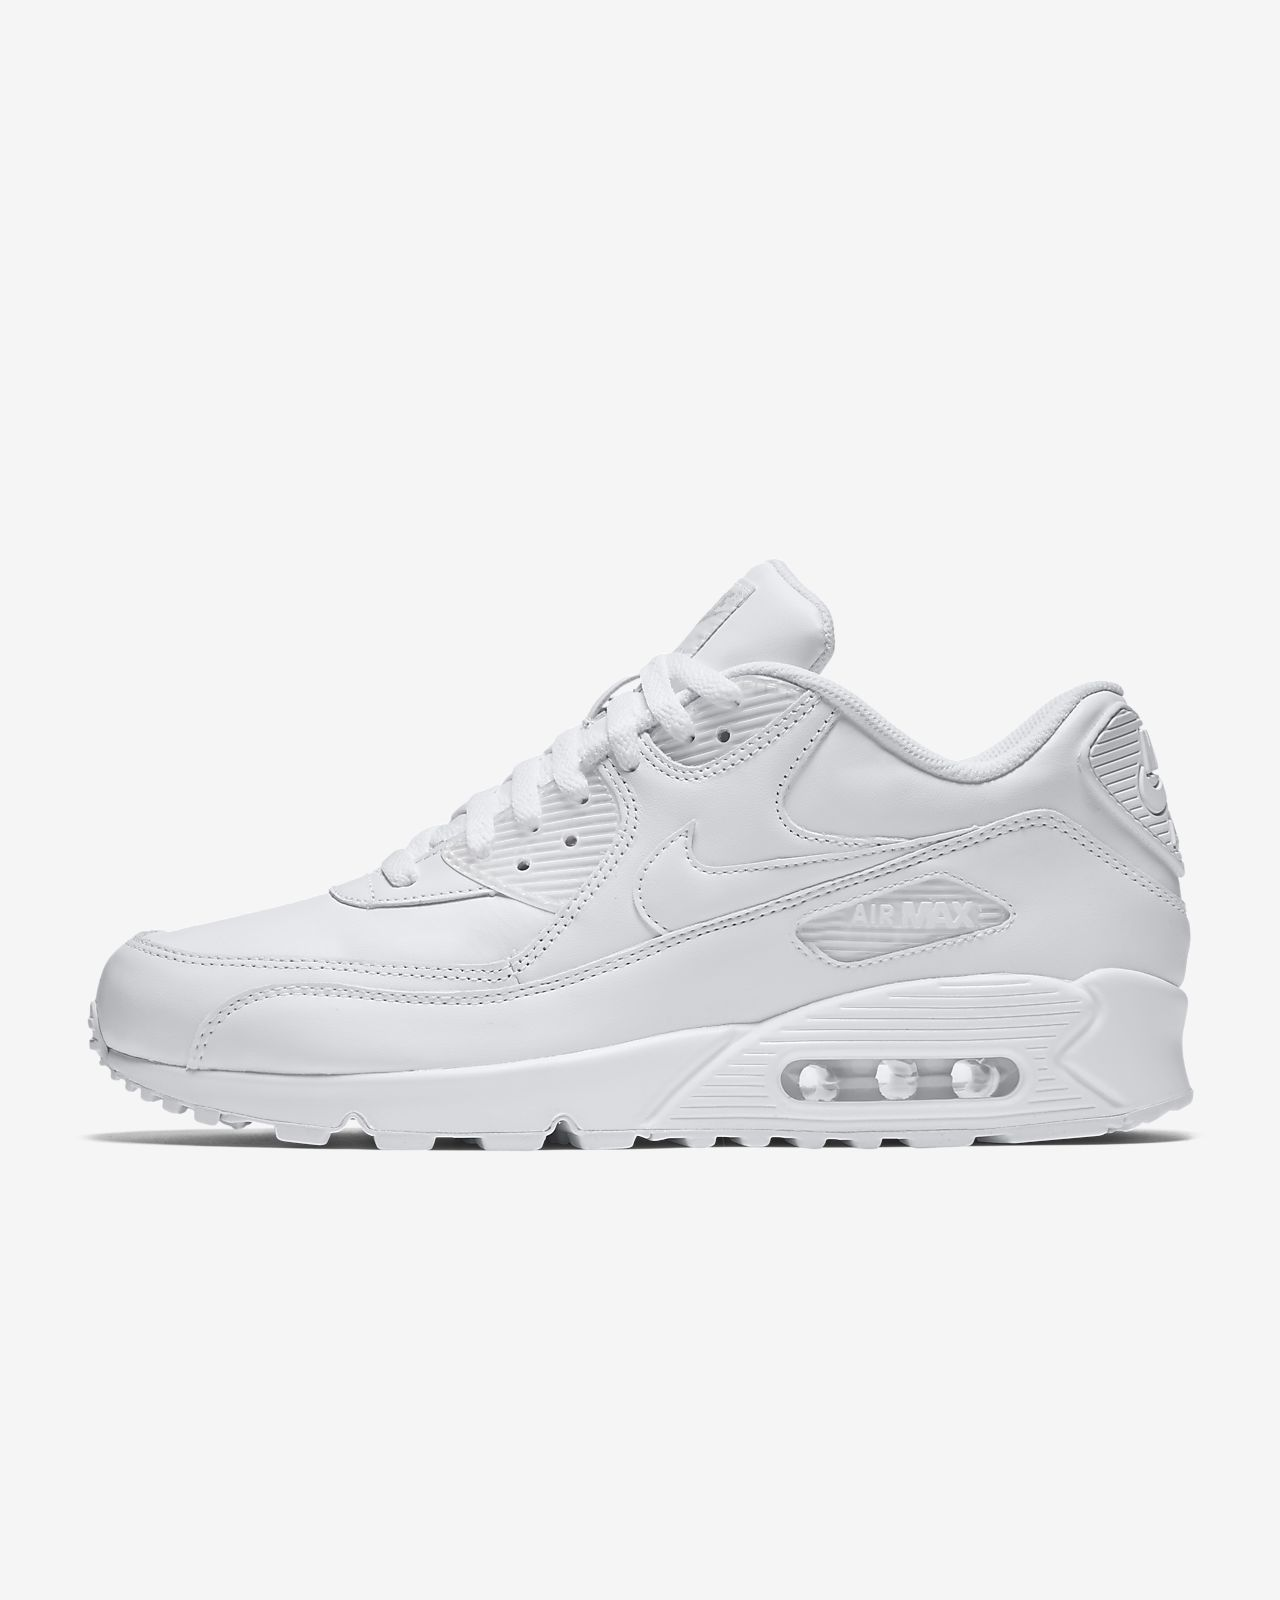 Мужские кроссовки Nike Air Max 90 Leather. Nike.com RU 6488f94ff85